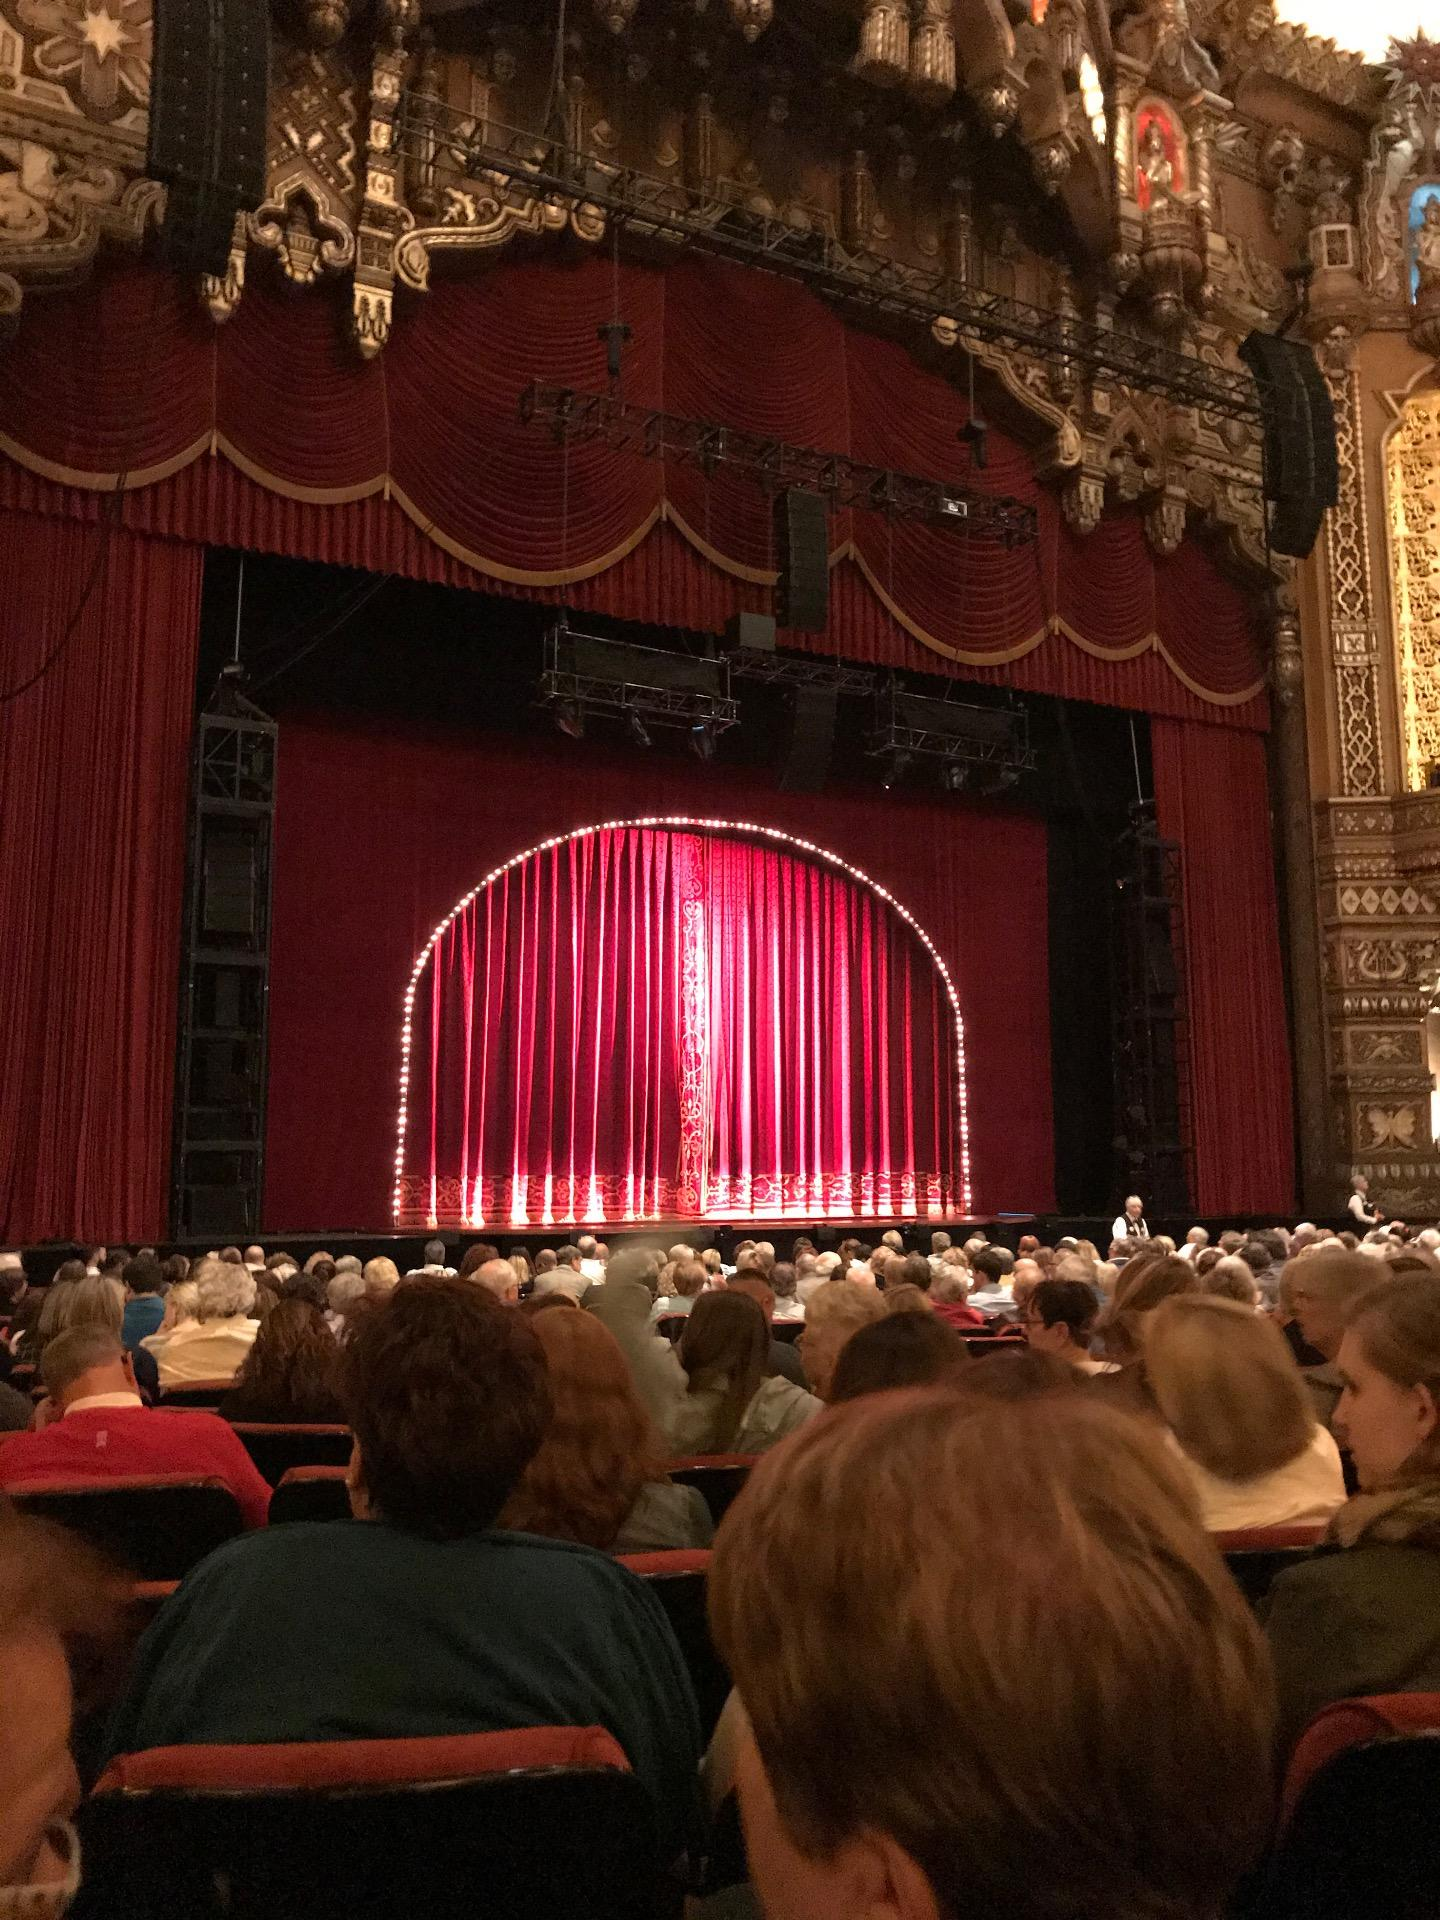 The Fabulous Fox Theatre (St. Louis) Section Orchestra 2 Row R Seat 15